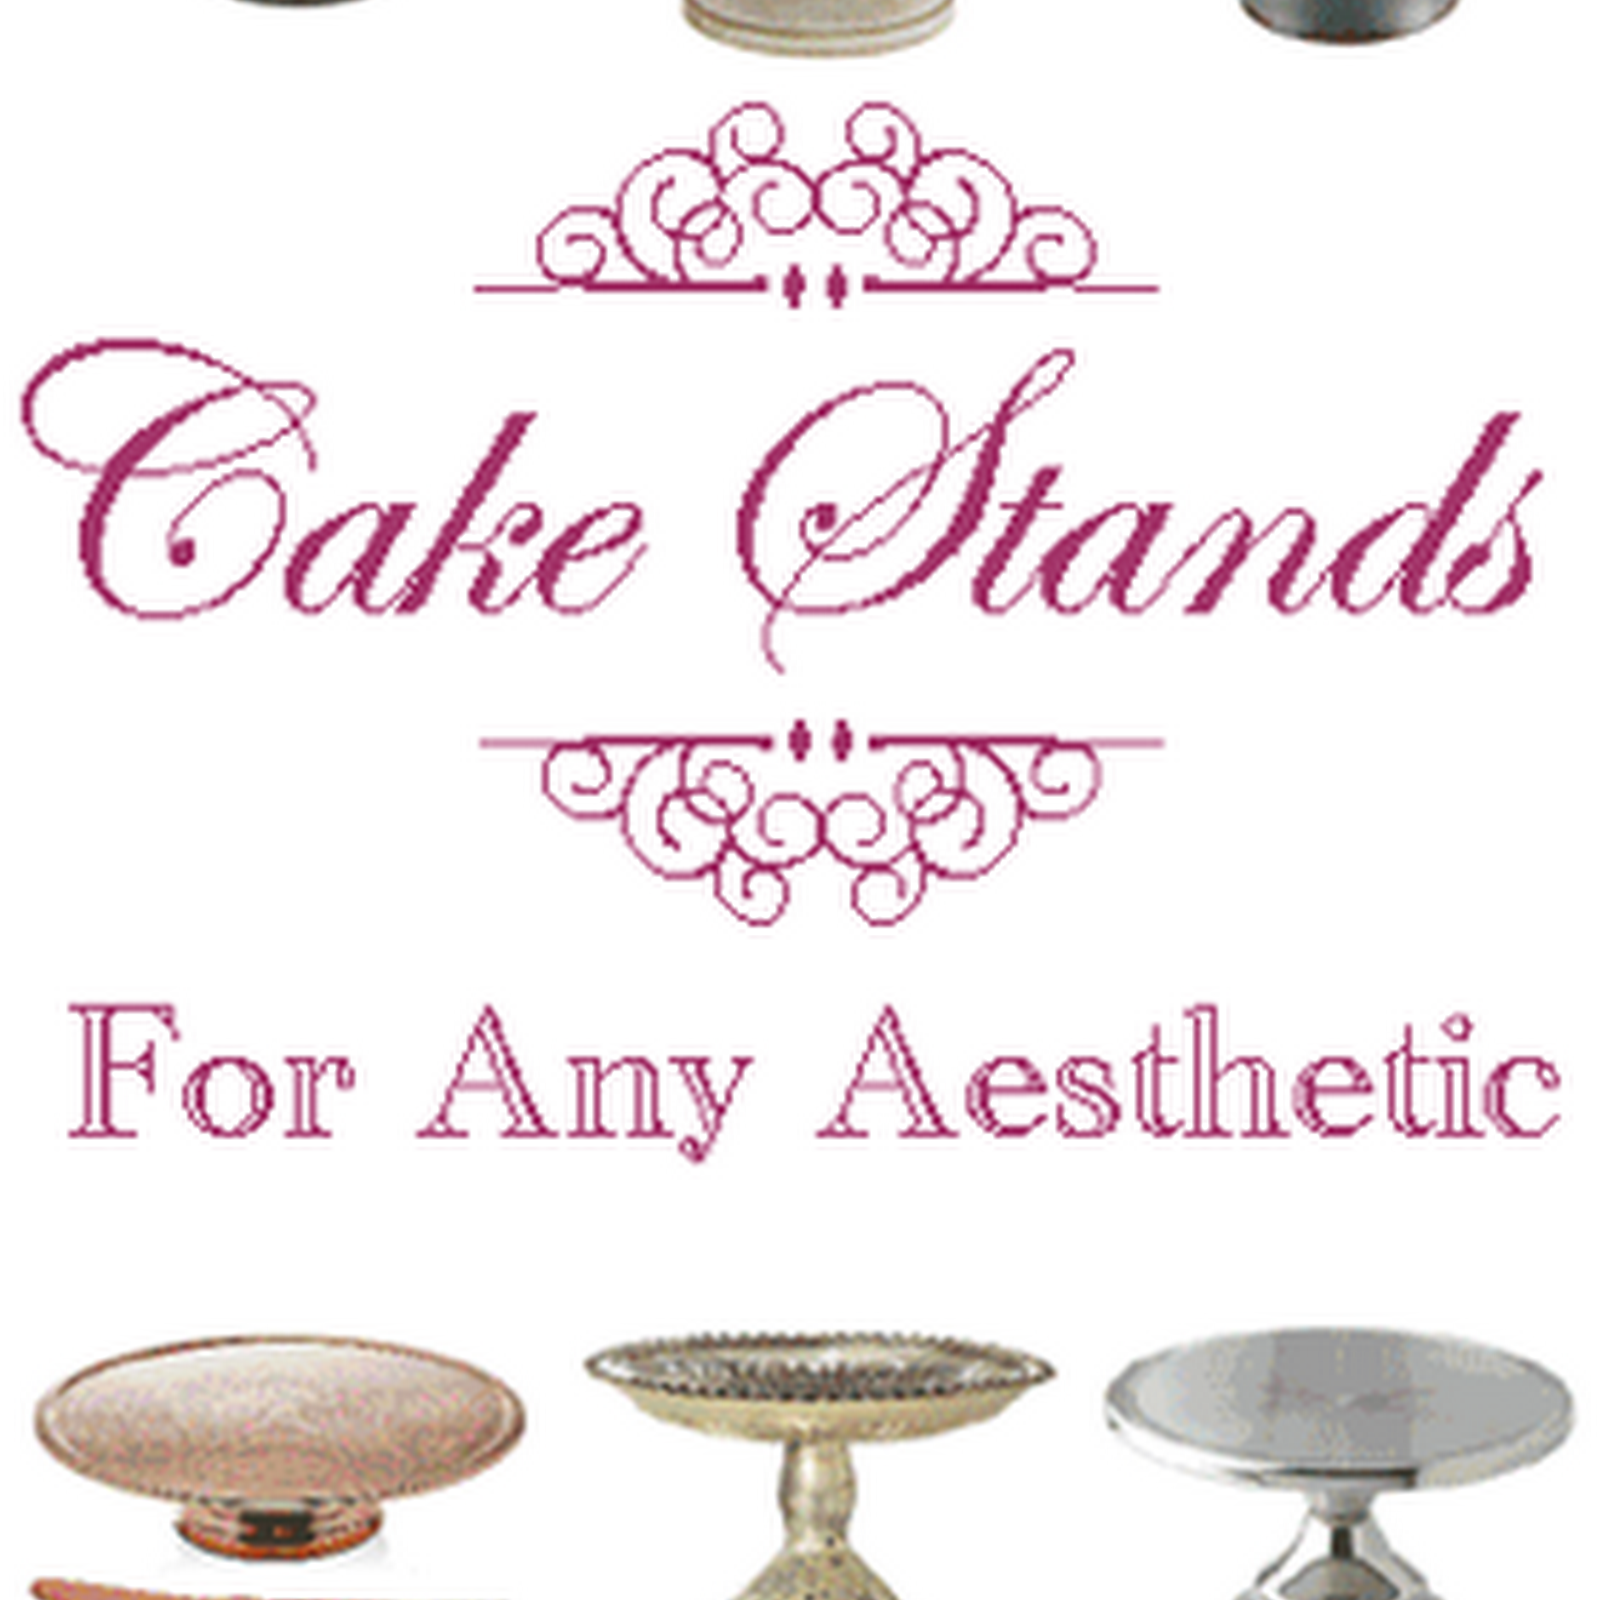 30 Cake Stands I Would Buy Right Now (If I Needed More Cake Stands)